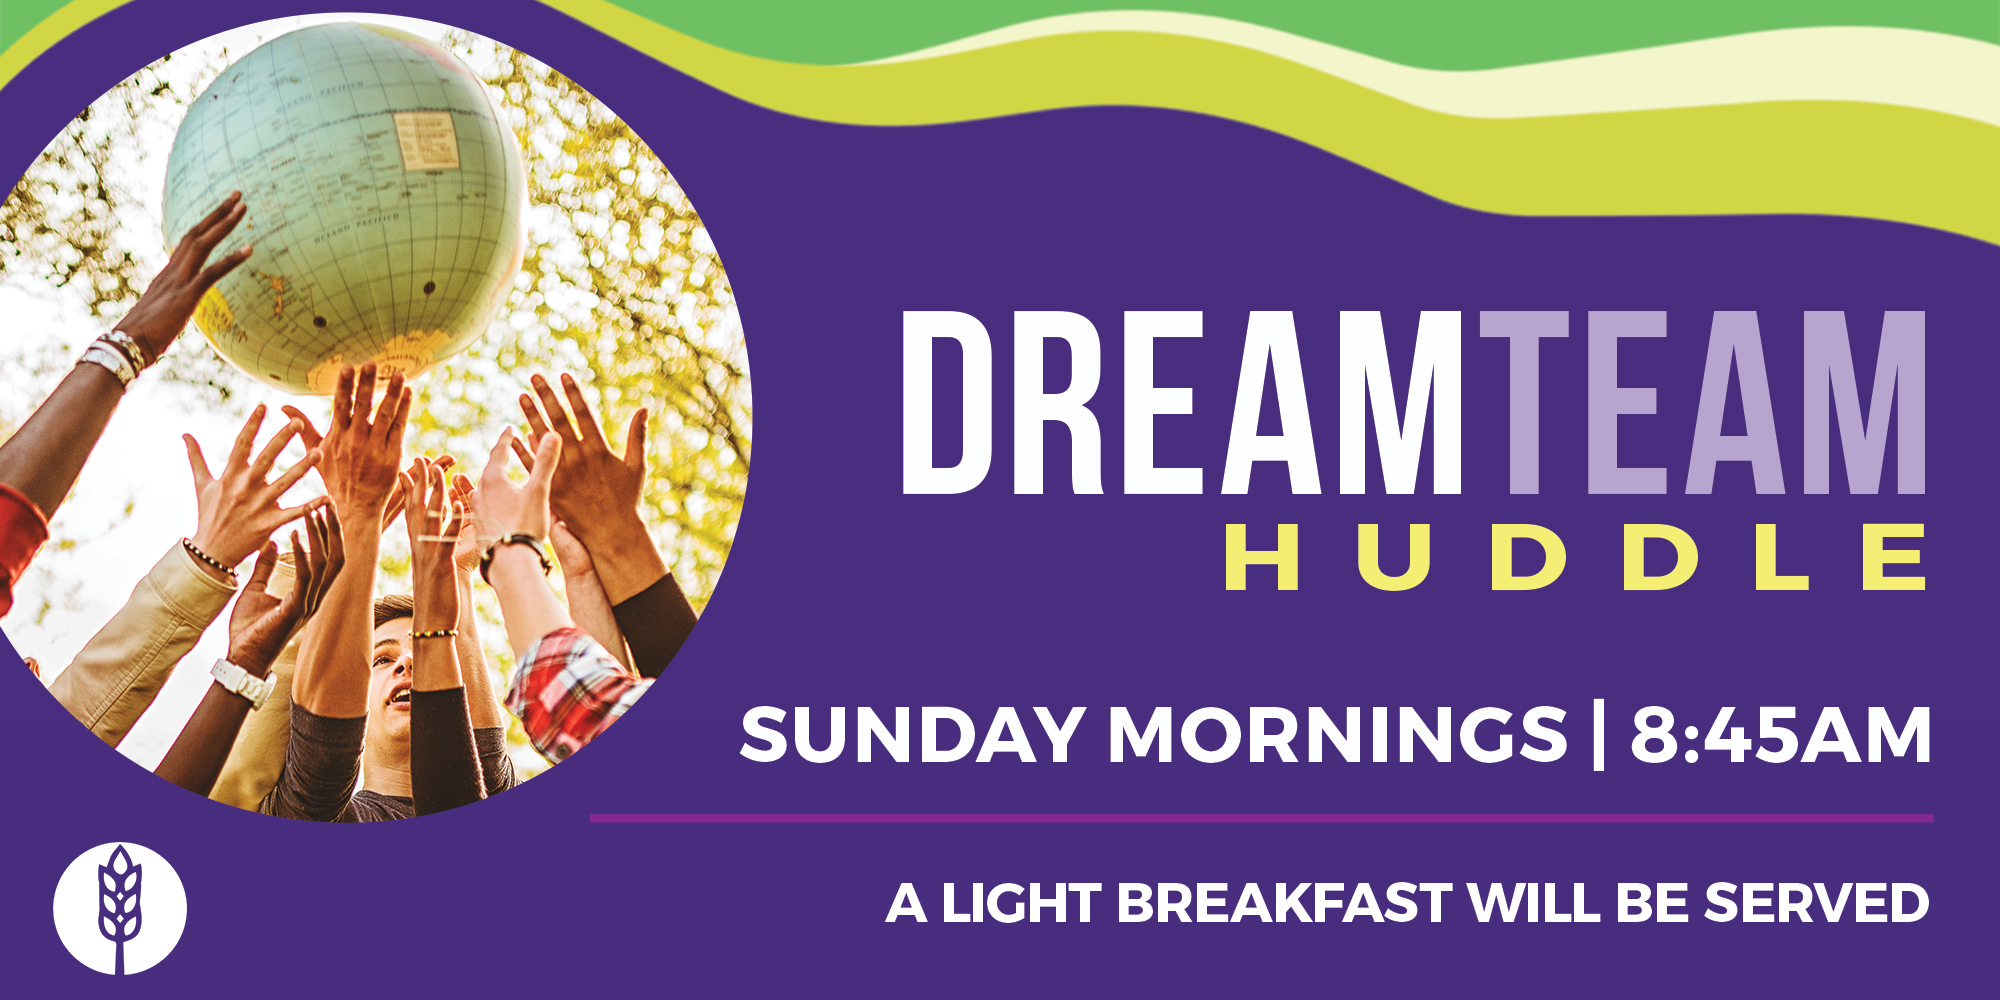 DreamTEAM Huddle Sunday Mornings 8:30AM A Light Breakfast Will Be Served